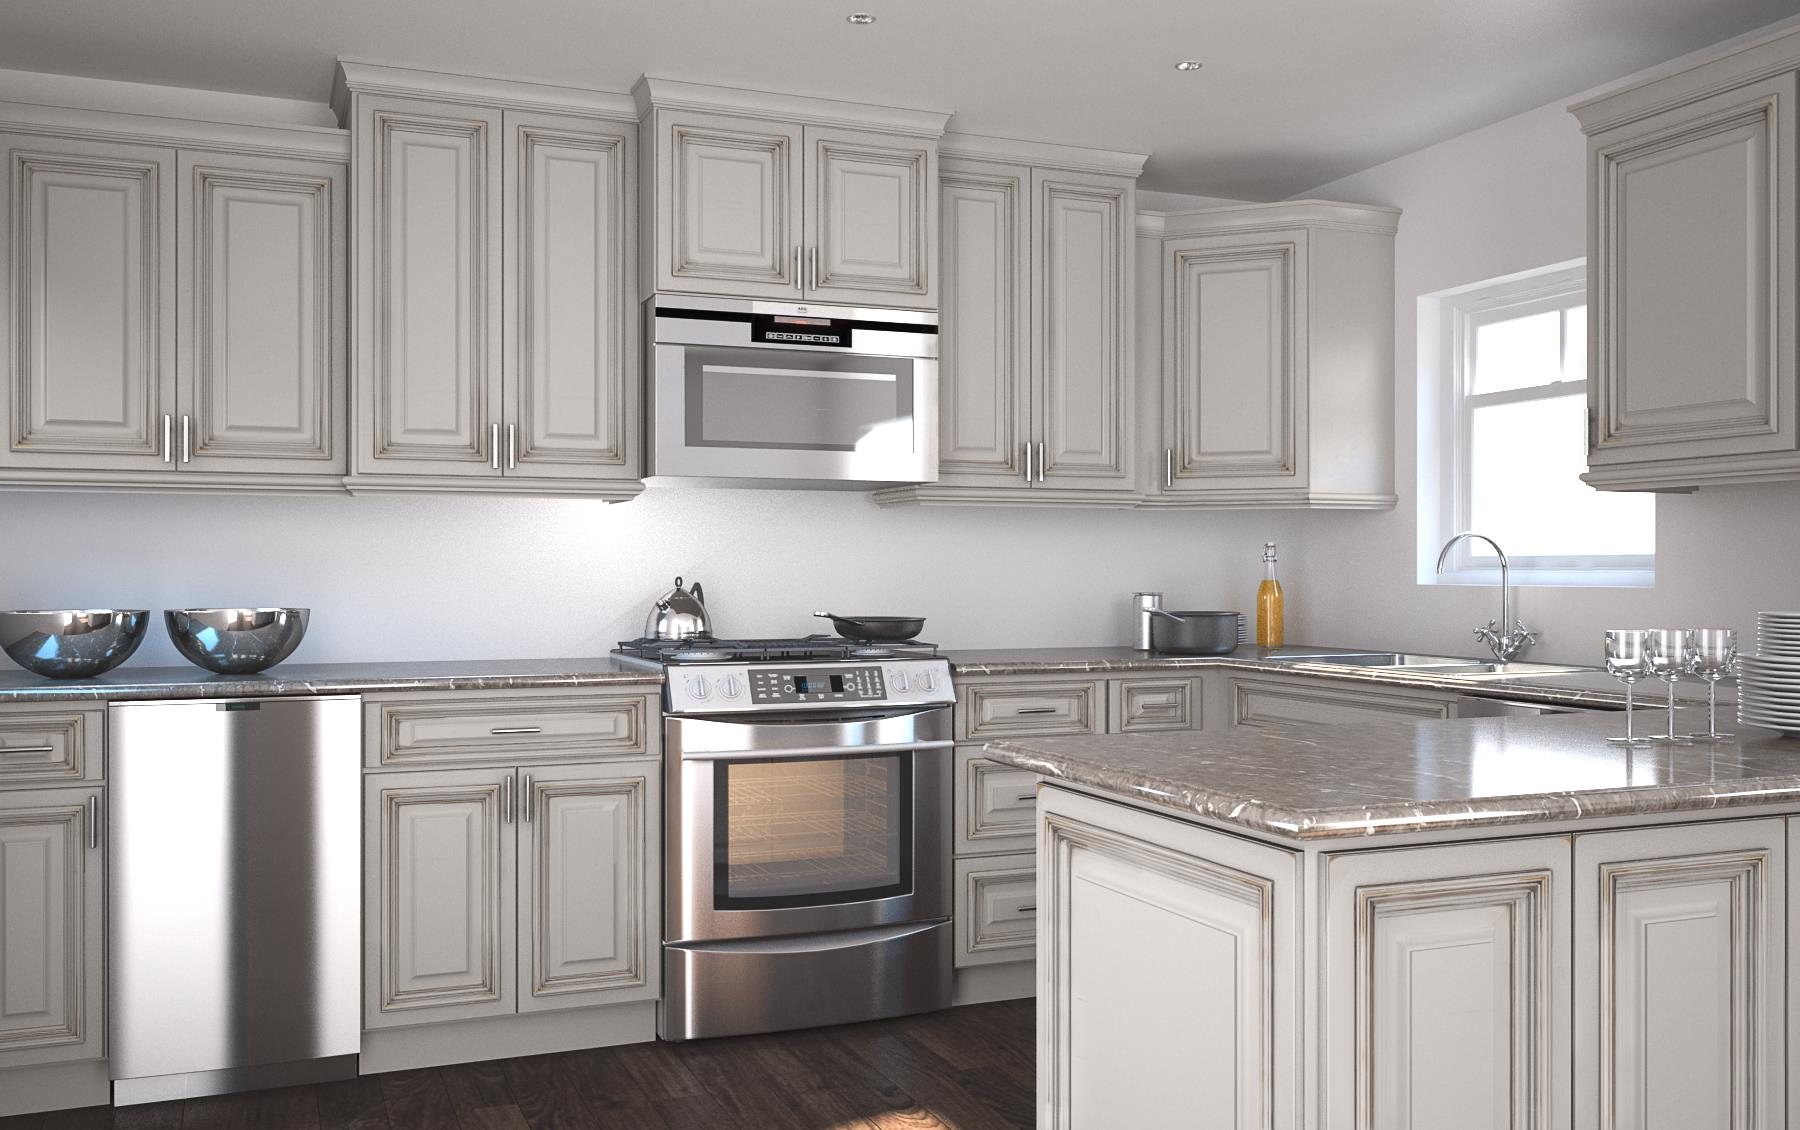 Kitchen Cabinet Kings Discount Code Rta Kitchen Cabinets Online Promo Code Besto Blog